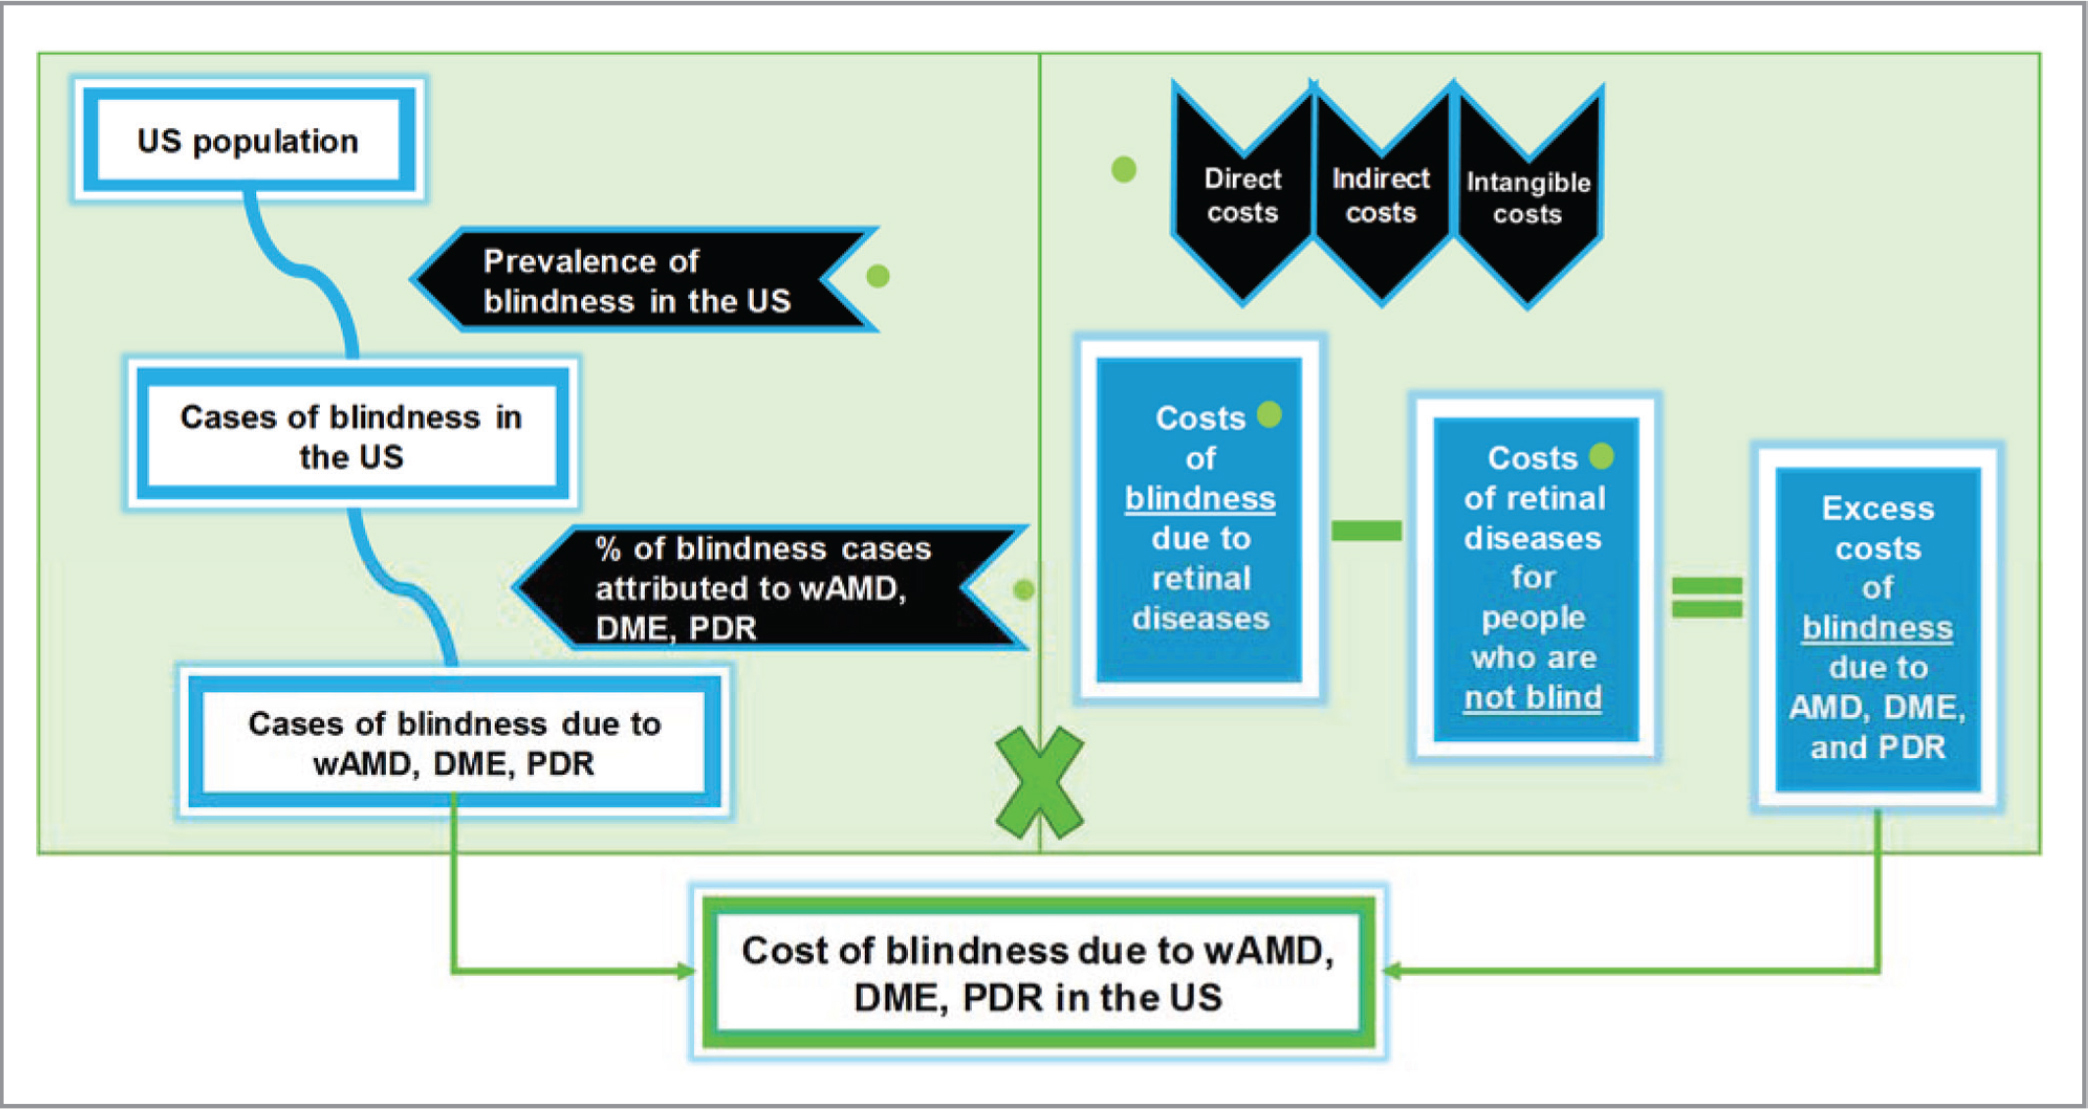 Model structure. In the model, the excess costs that occur as a result of blindness due to retinal diseases of interest were estimated as the difference of costs attributed to blindness due to the retinal diseases of interest and costs associated with non-blind individuals. DME = diabetic macular edema; PDR = proliferative diabetic retinopathy; US = United States; wAMD = wet age-related macular degeneration